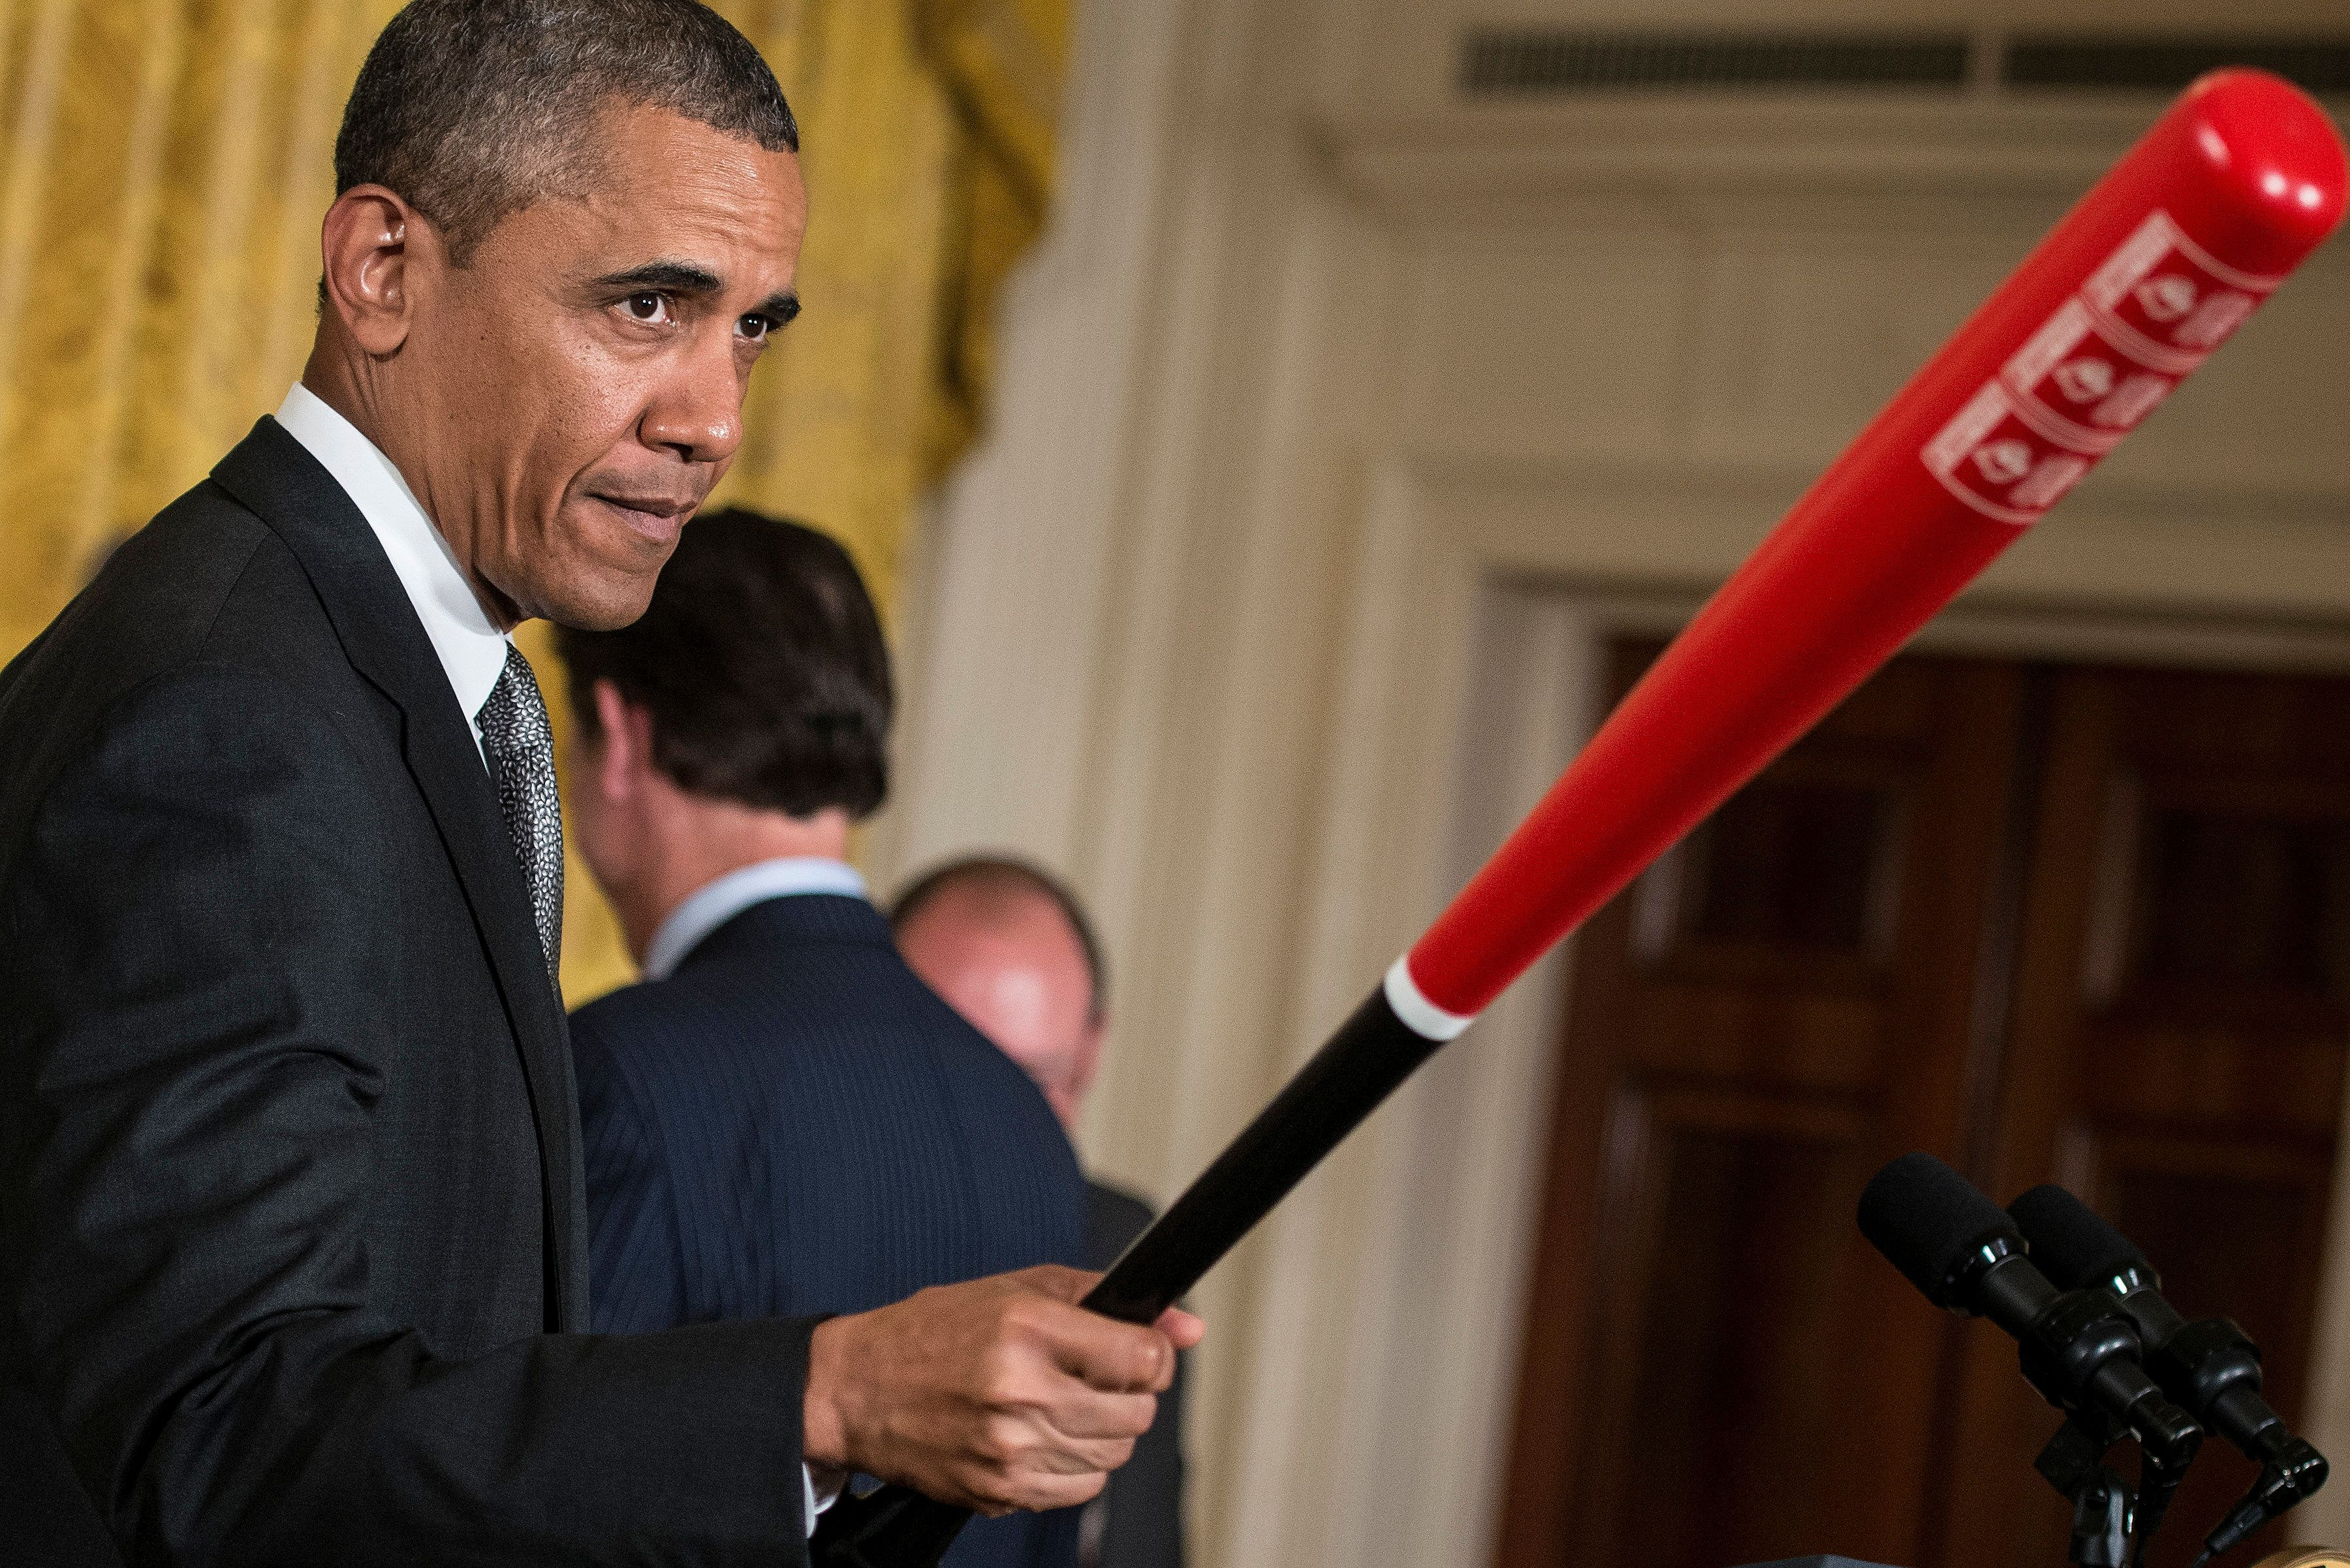 US President Barack Obama holds a Louisville Slugger baseball bat given to him by Louisville coach Rick Pitino during an event in the East Room of the White House July 23, 2013 in Washington, DC. Obama attended the event with the Louisville Cardinals to honor their 2013 NCAA Mens Basketball Champion win. AFP PHOTO/Brendan SMIALOWSKI        (Photo credit should read BRENDAN SMIALOWSKI/AFP/Getty Images)